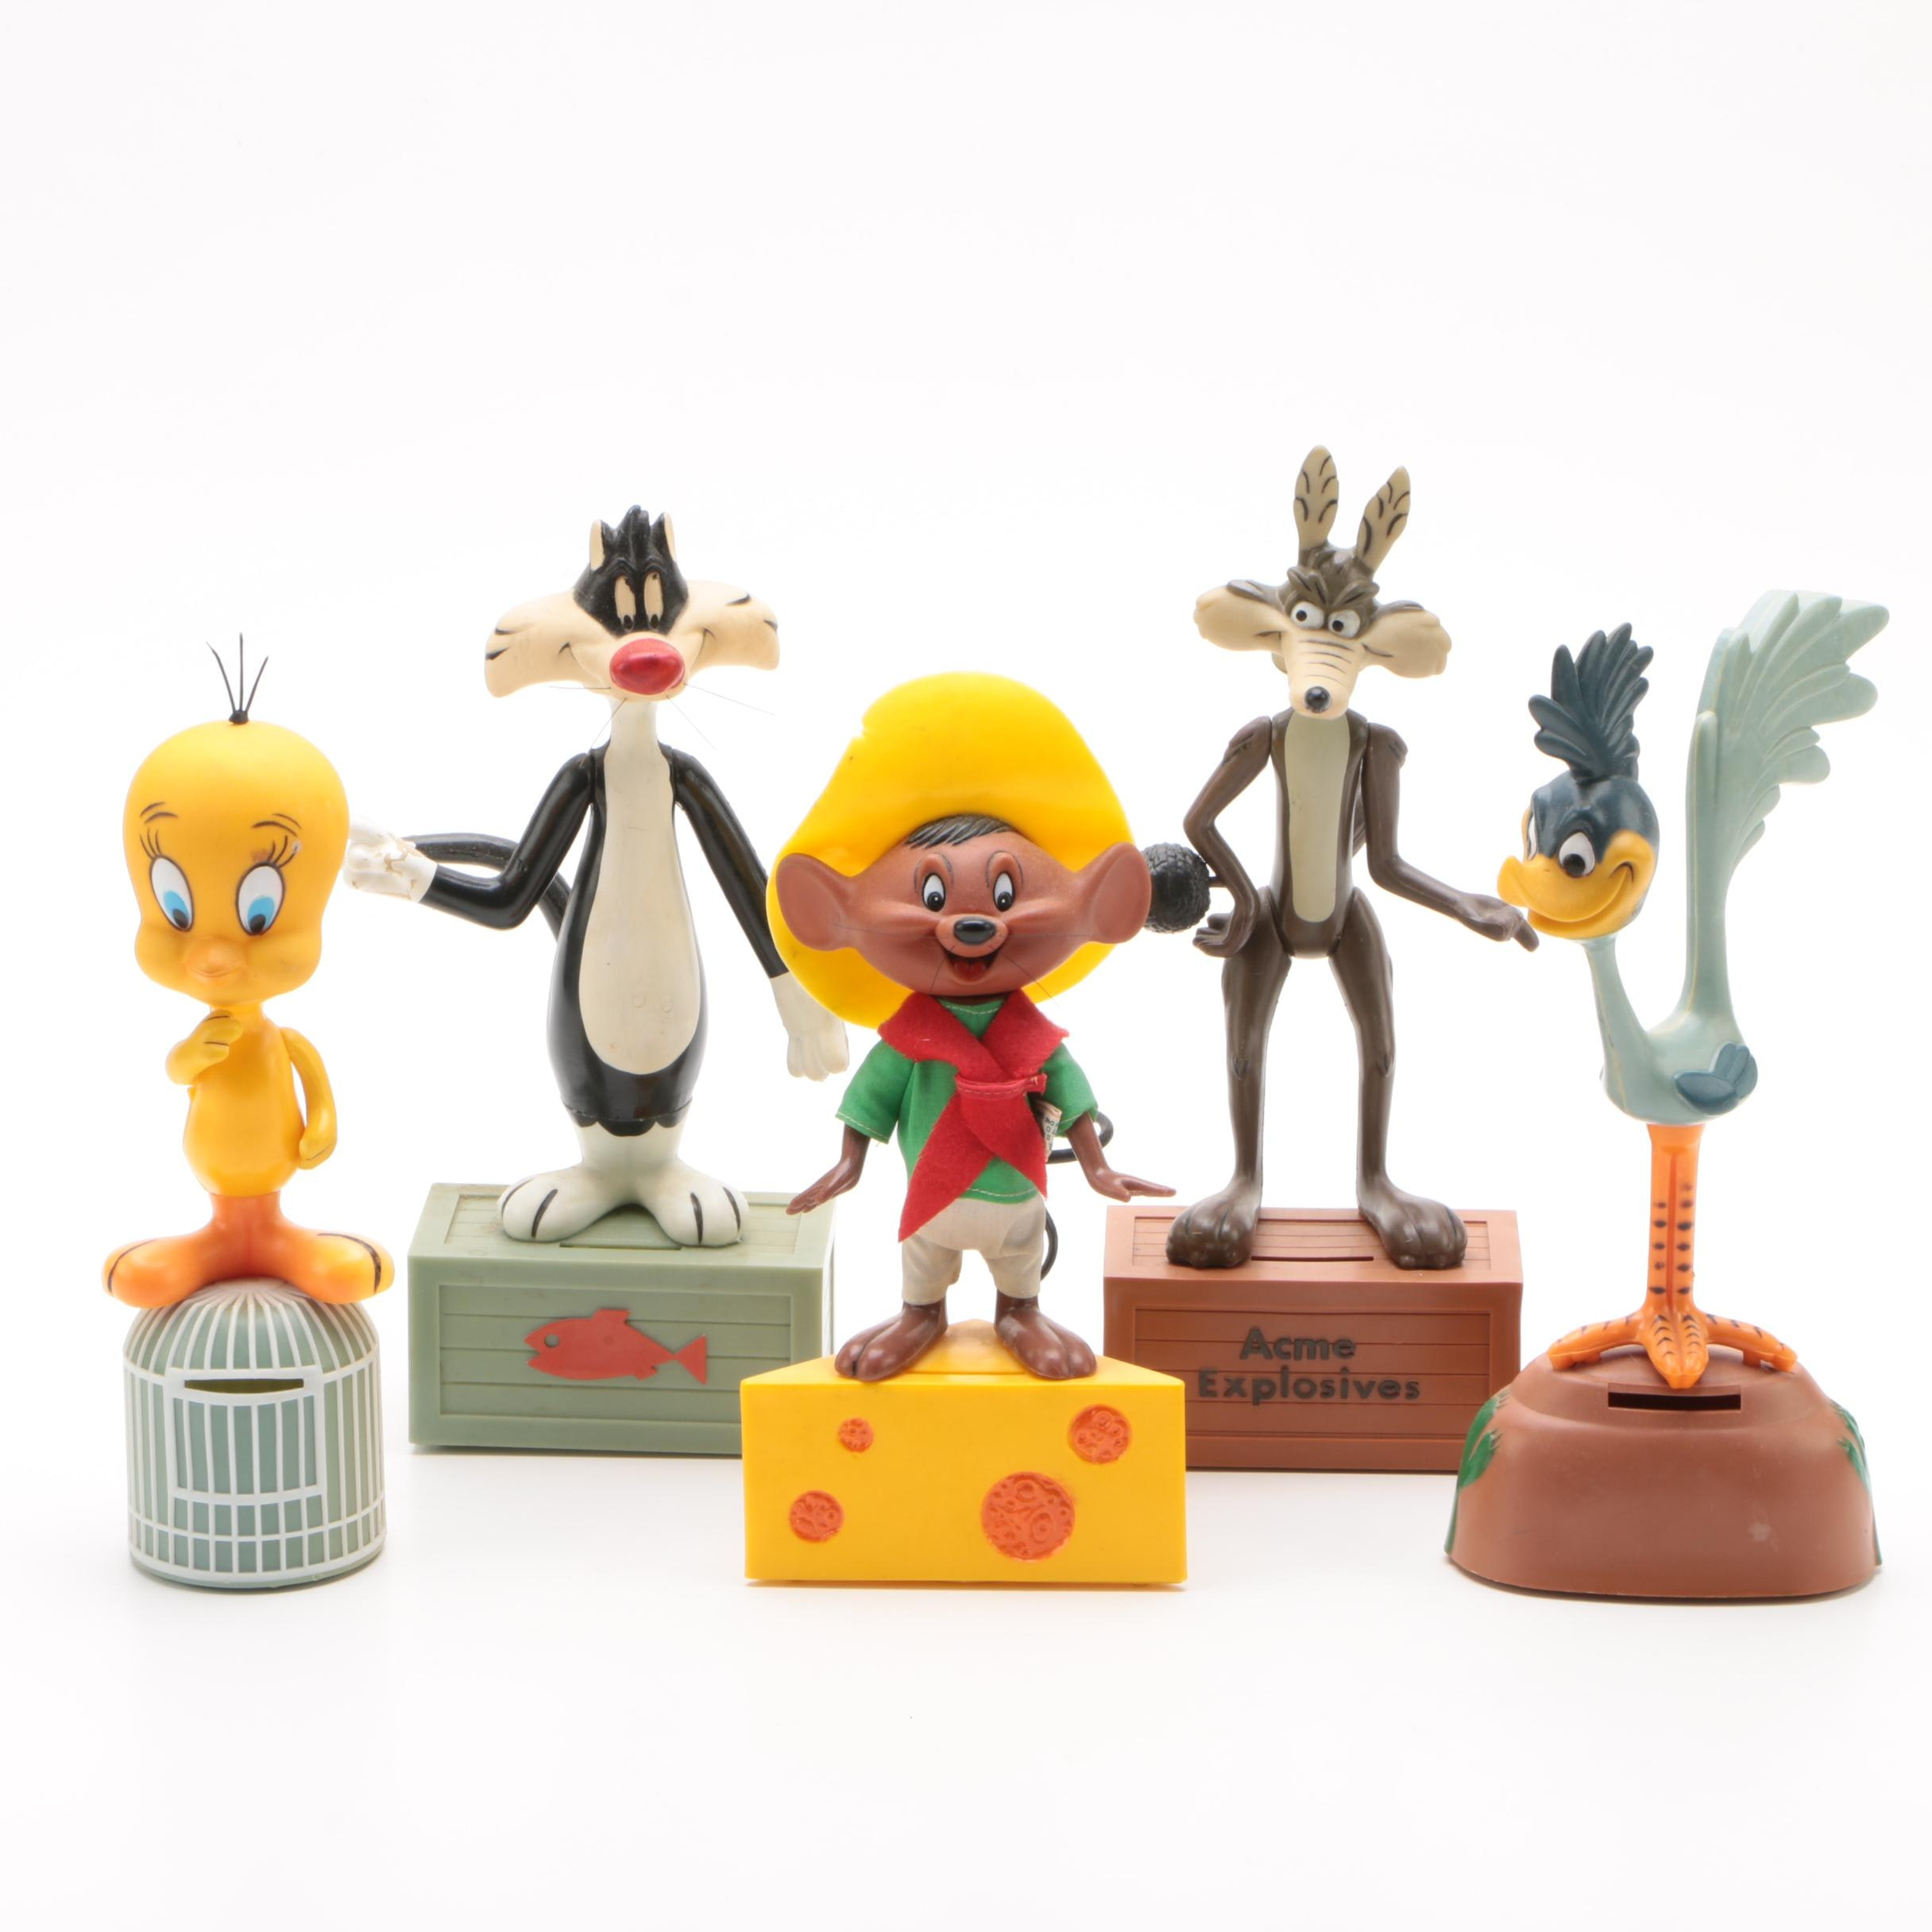 Looney Toons Coin Banks by R. Dakin & Co., 1970s